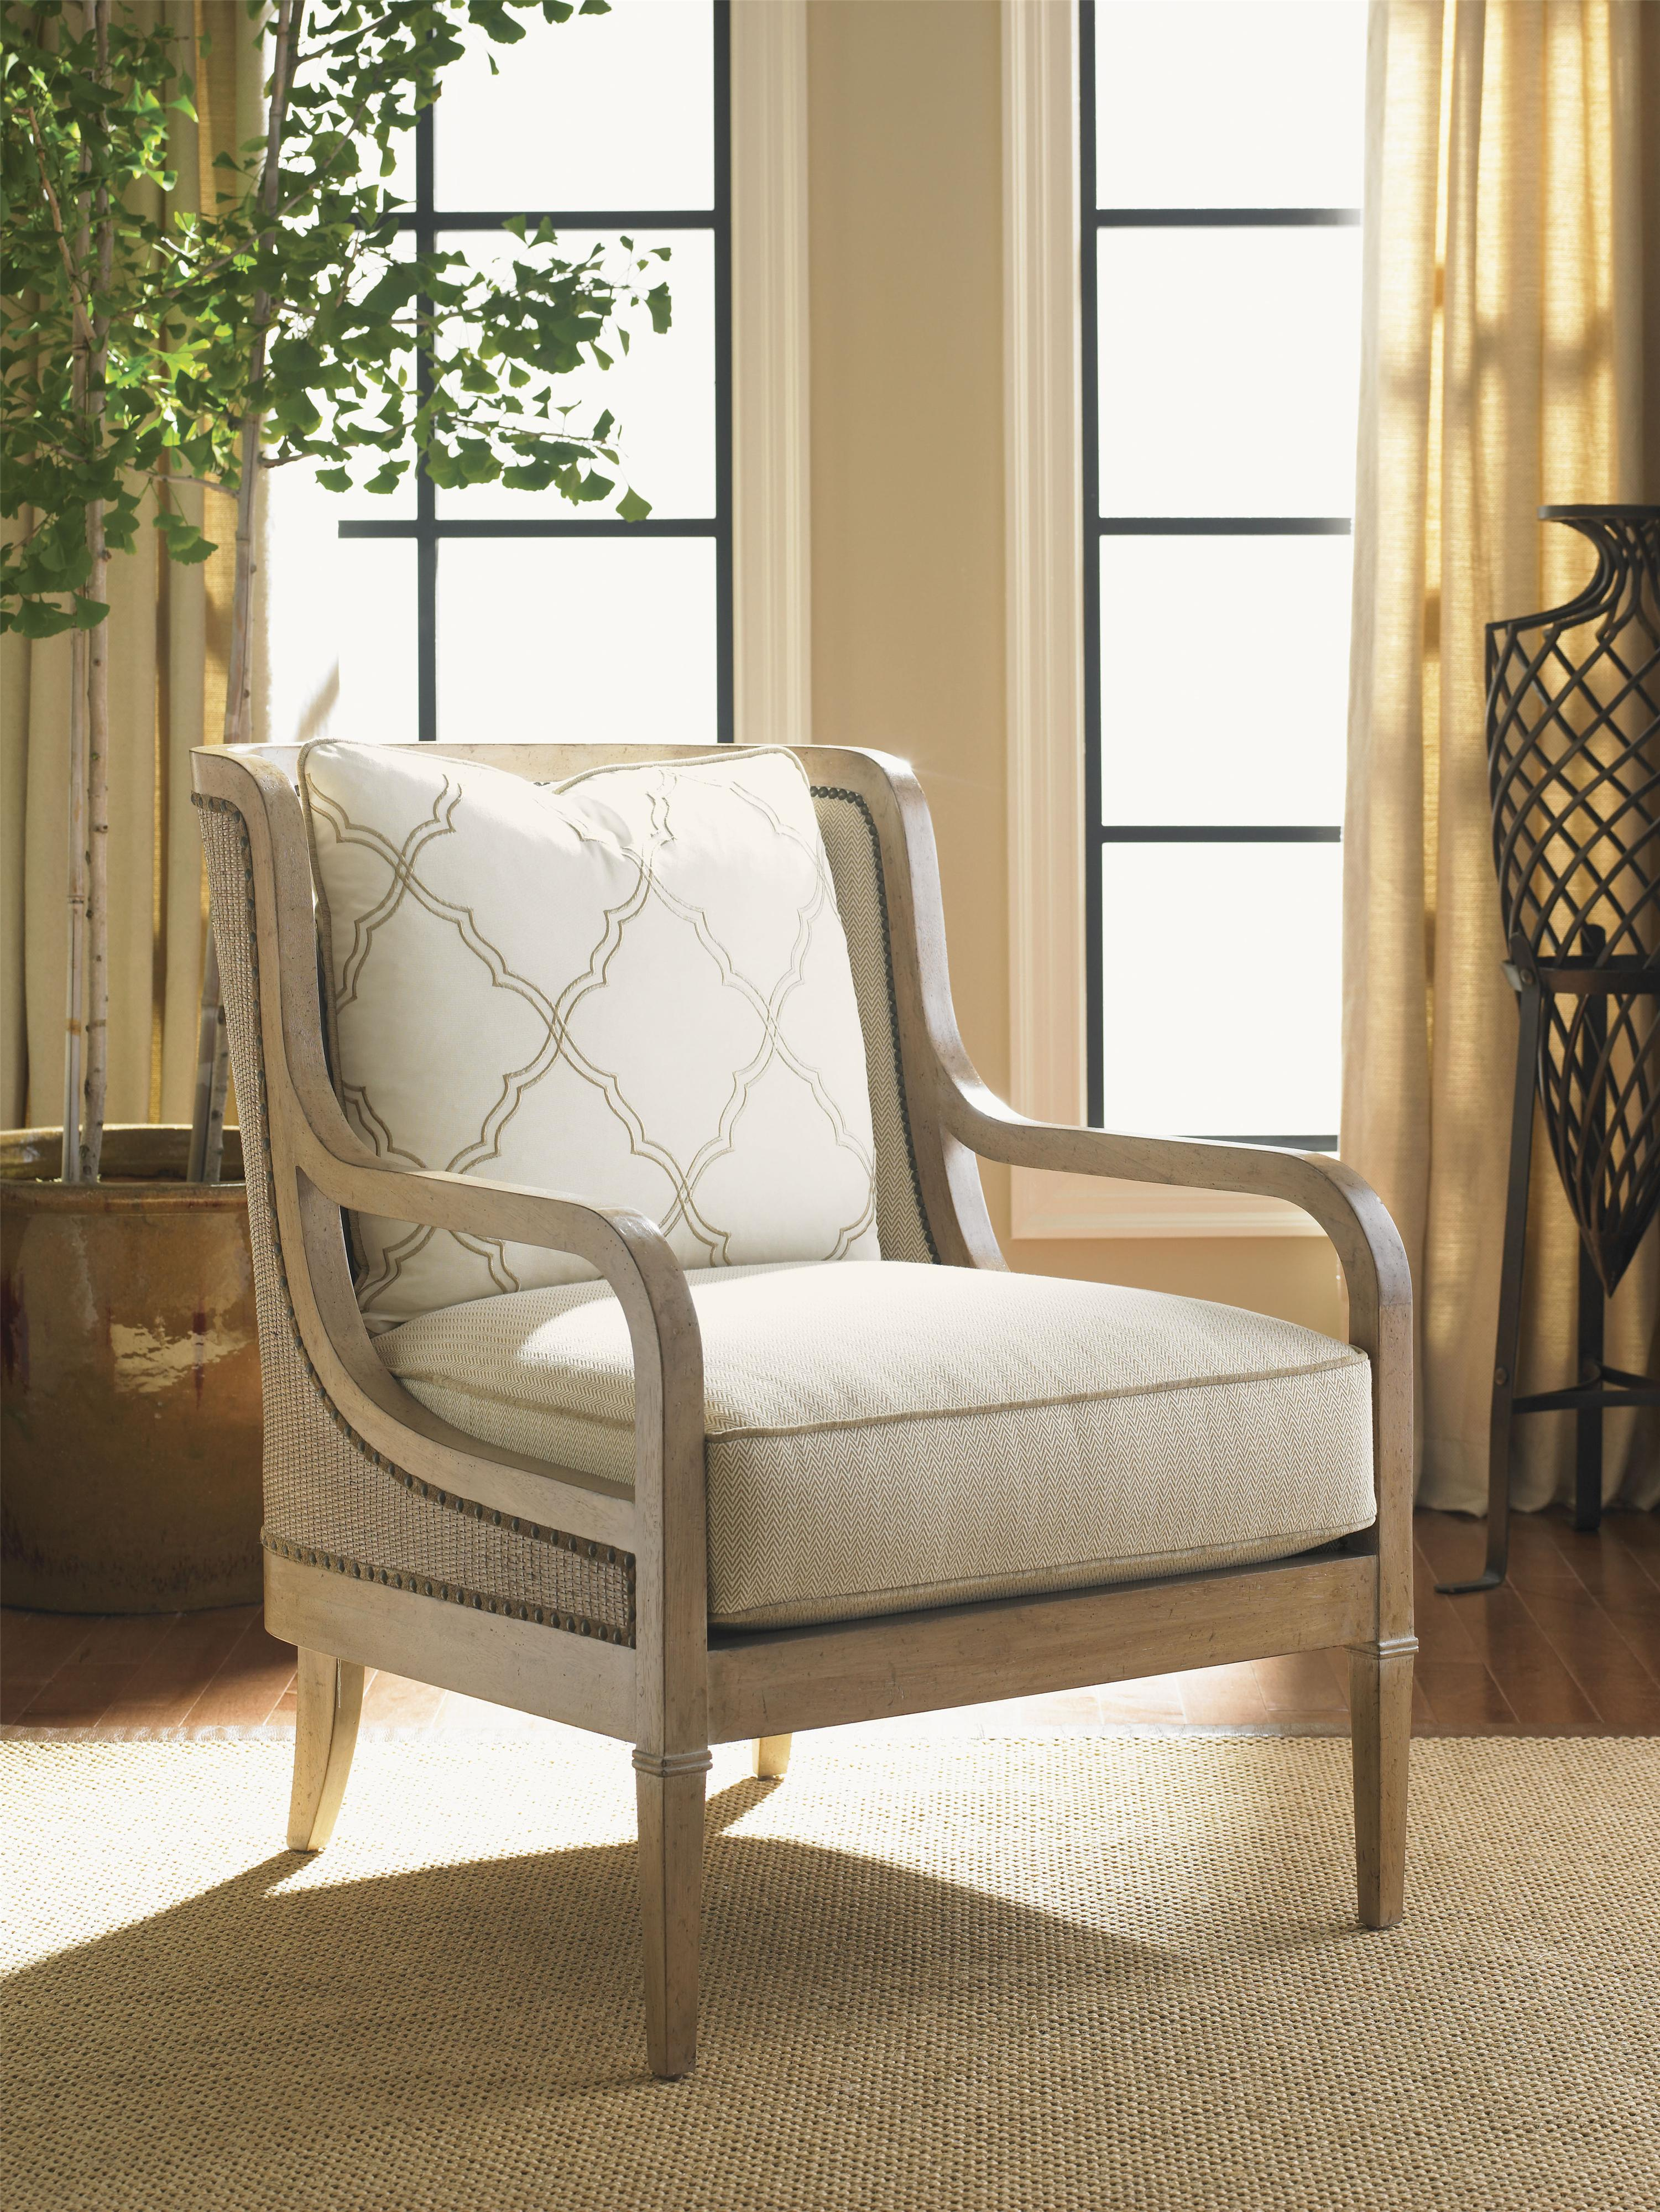 Lexington monterey sands 7276 11 archer chair with exposed wood arms baer 39 s furniture Lexington home brands outdoor furniture